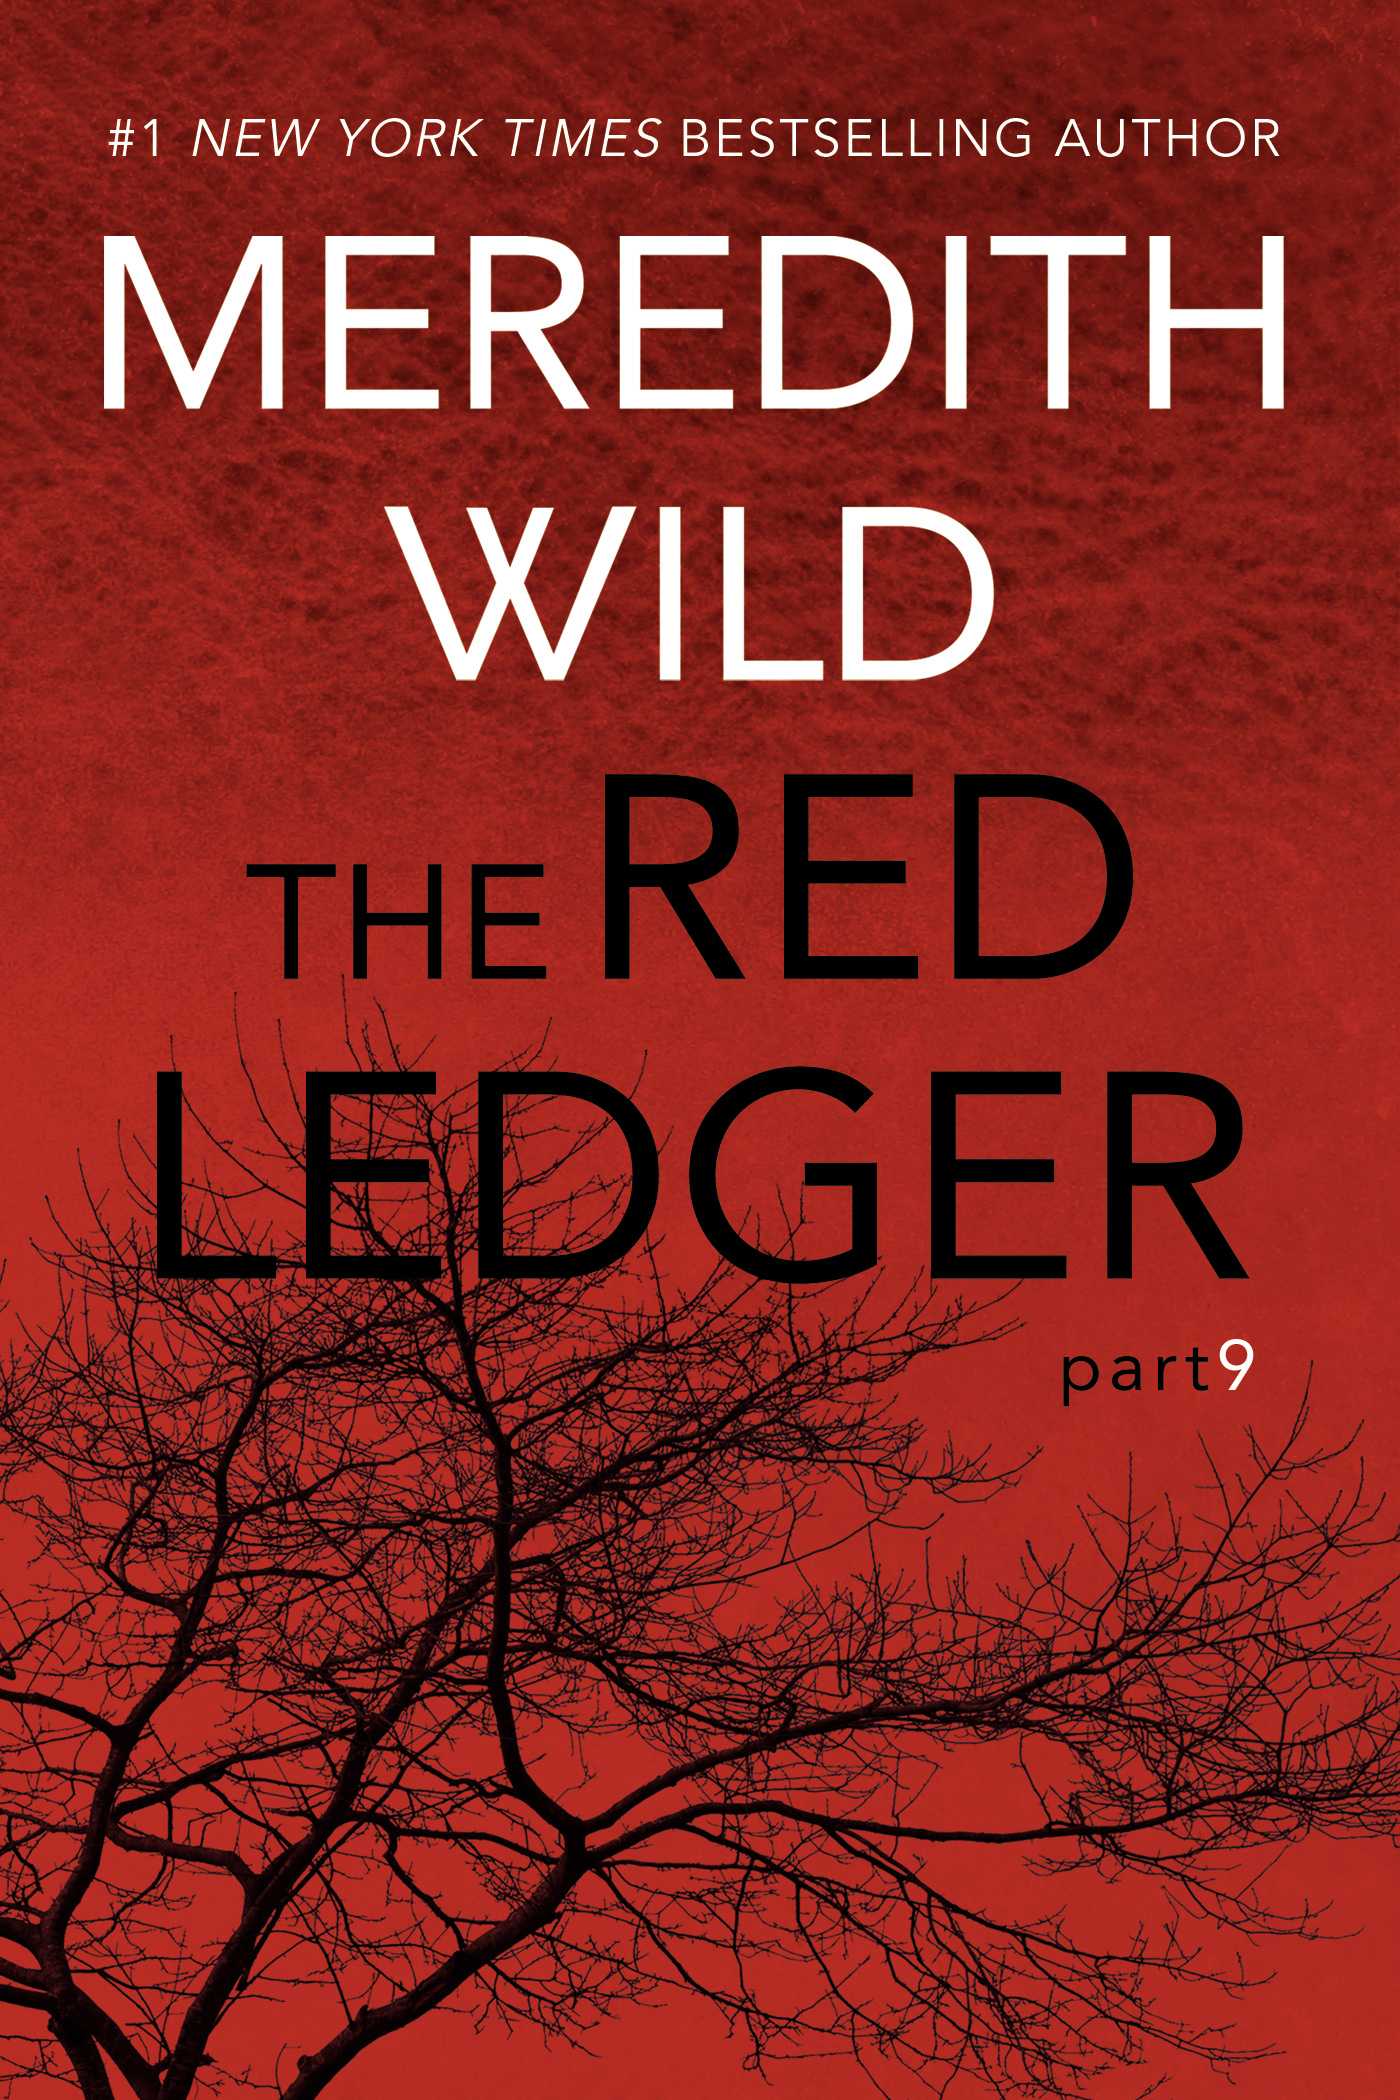 The Red Ledger: Part 9